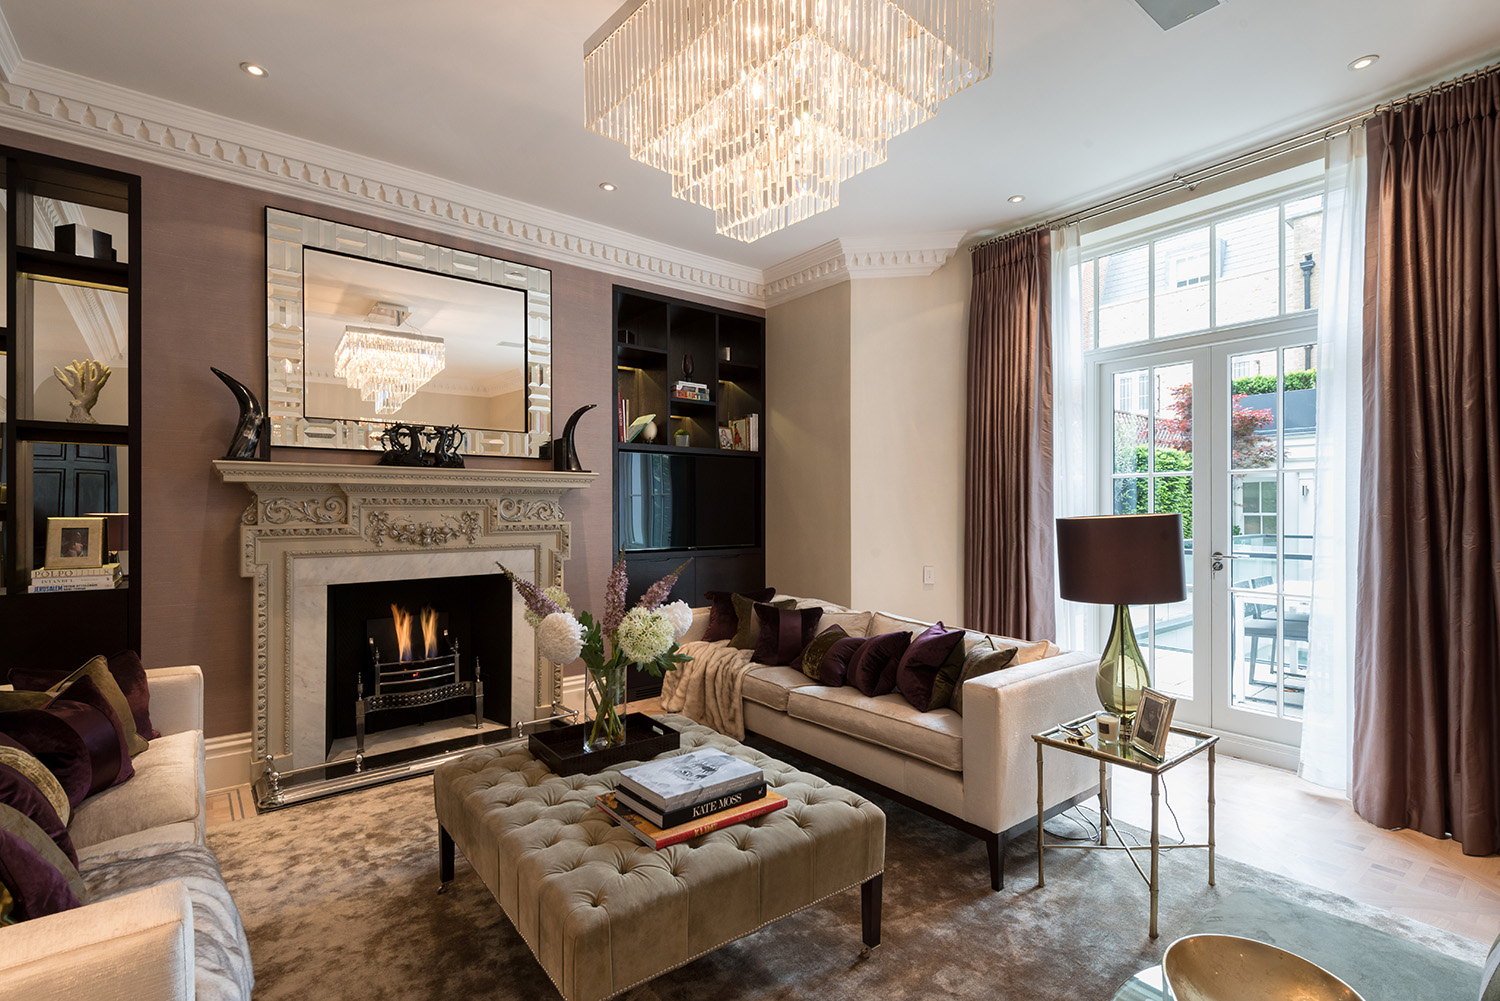 Mayfair family home w1 design box london luxury for Home interior images